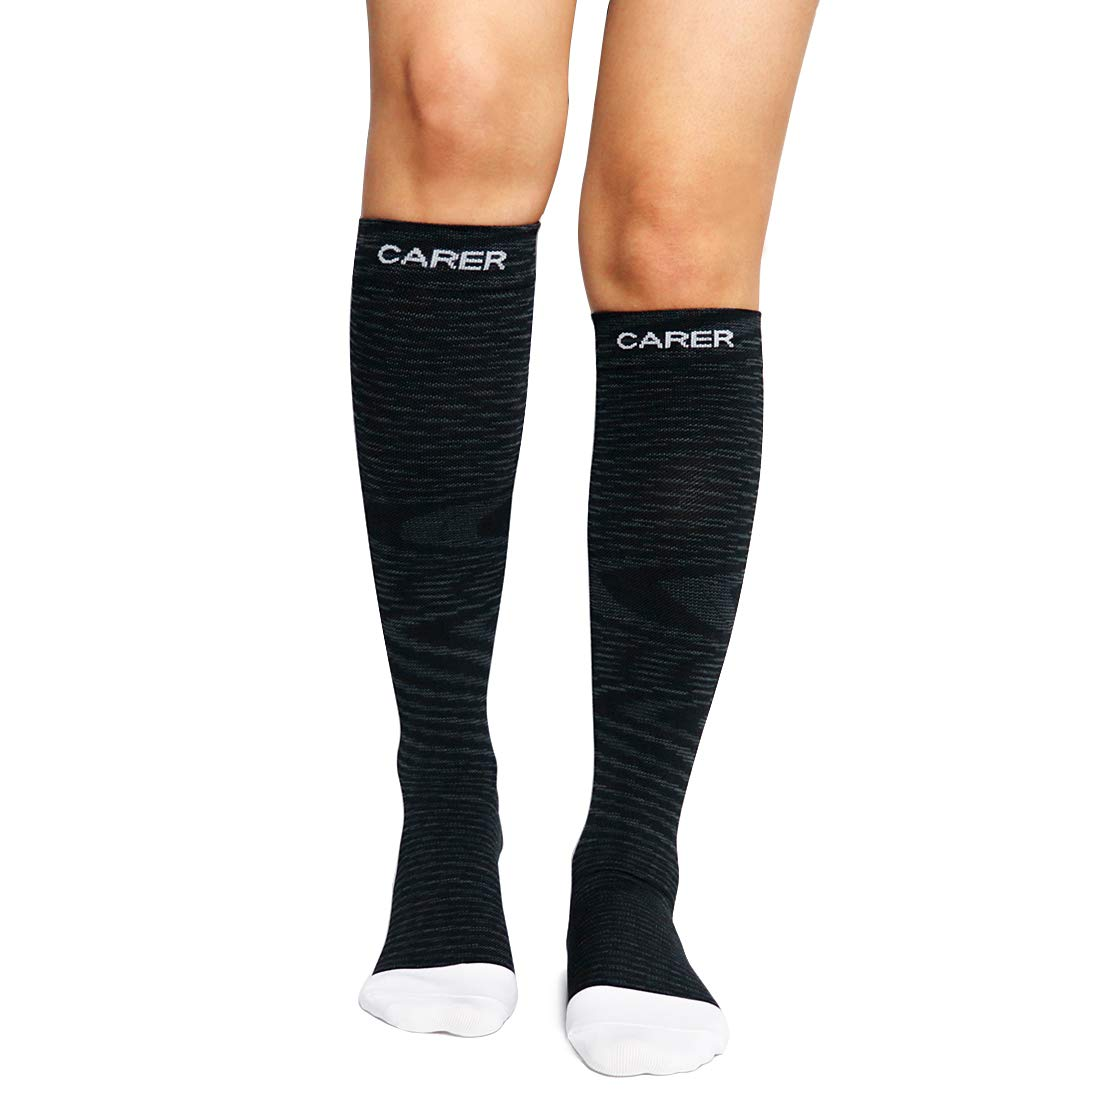 8df58b04c7 Amazon.com: SOCKSPARK Compression Socks Reduce Fatigue Pain Swelling Injury  Recovery Knee High Sock for Running Fitness Nursing 15-20 mmHg: Health ...